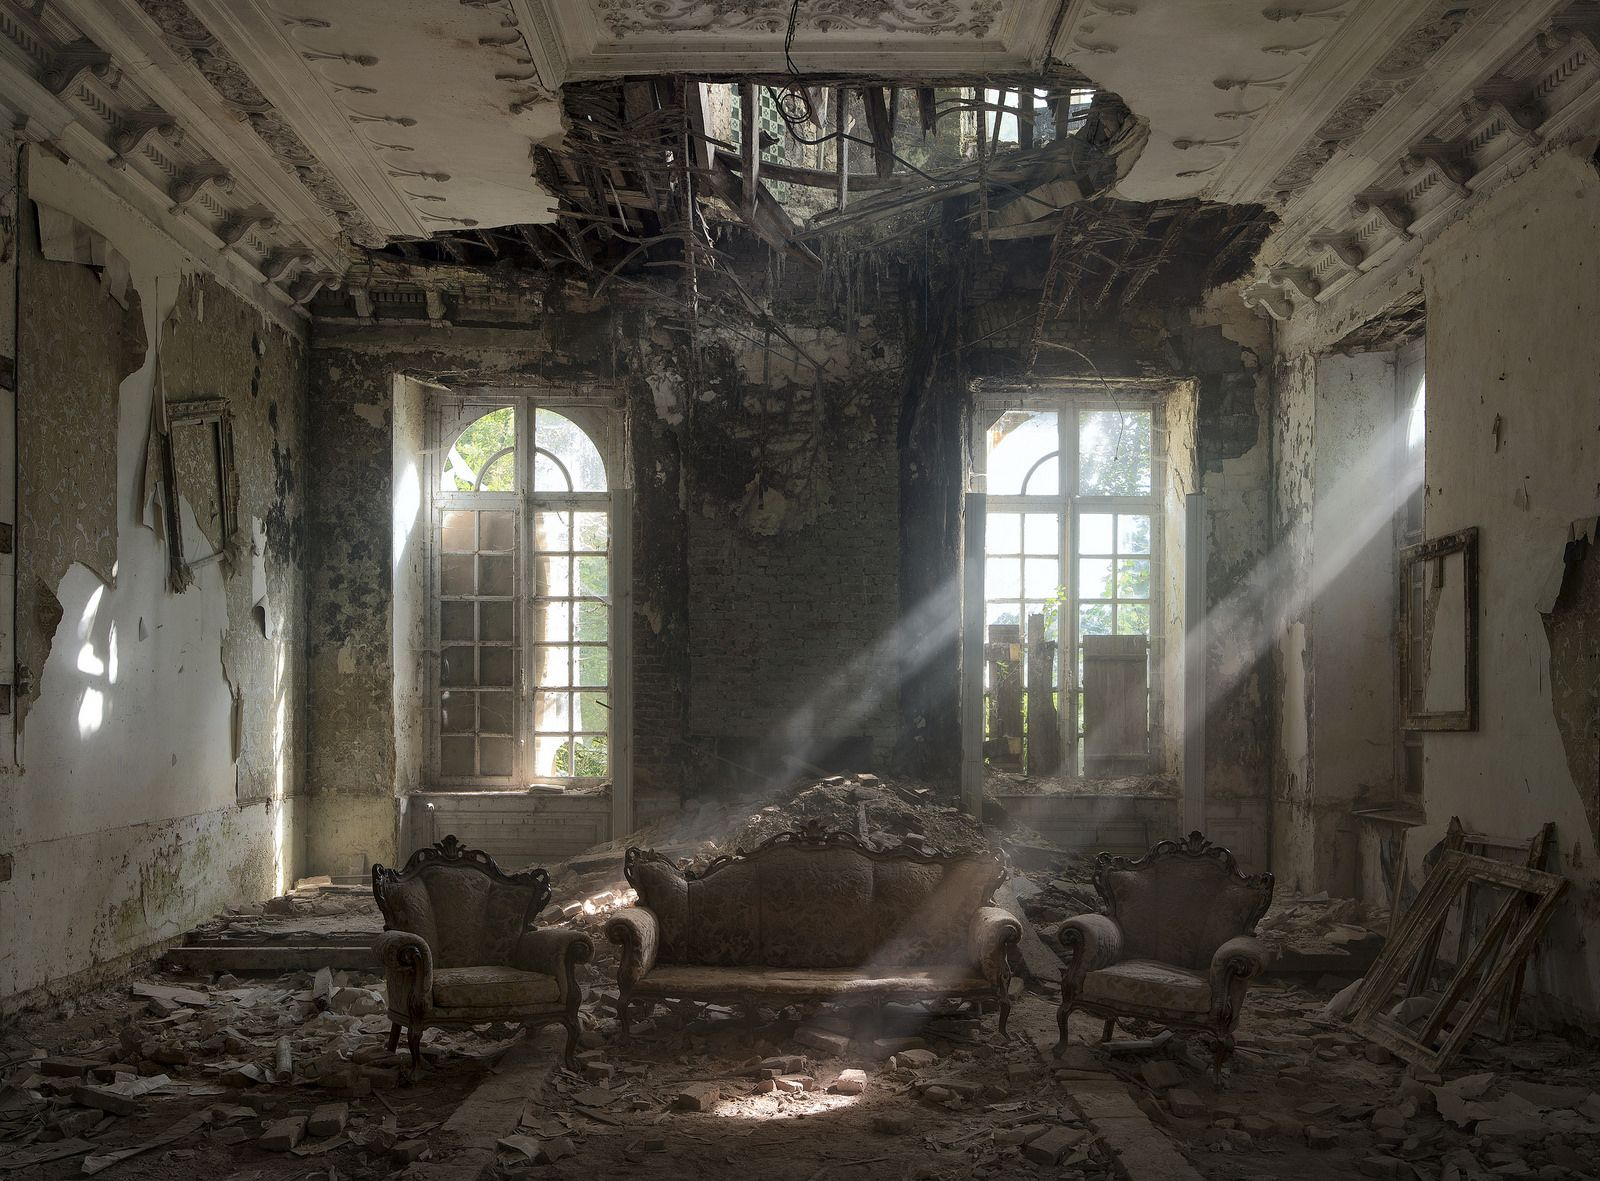 ajab-jankari-the-most-stunning-abandoned-places-on-earth